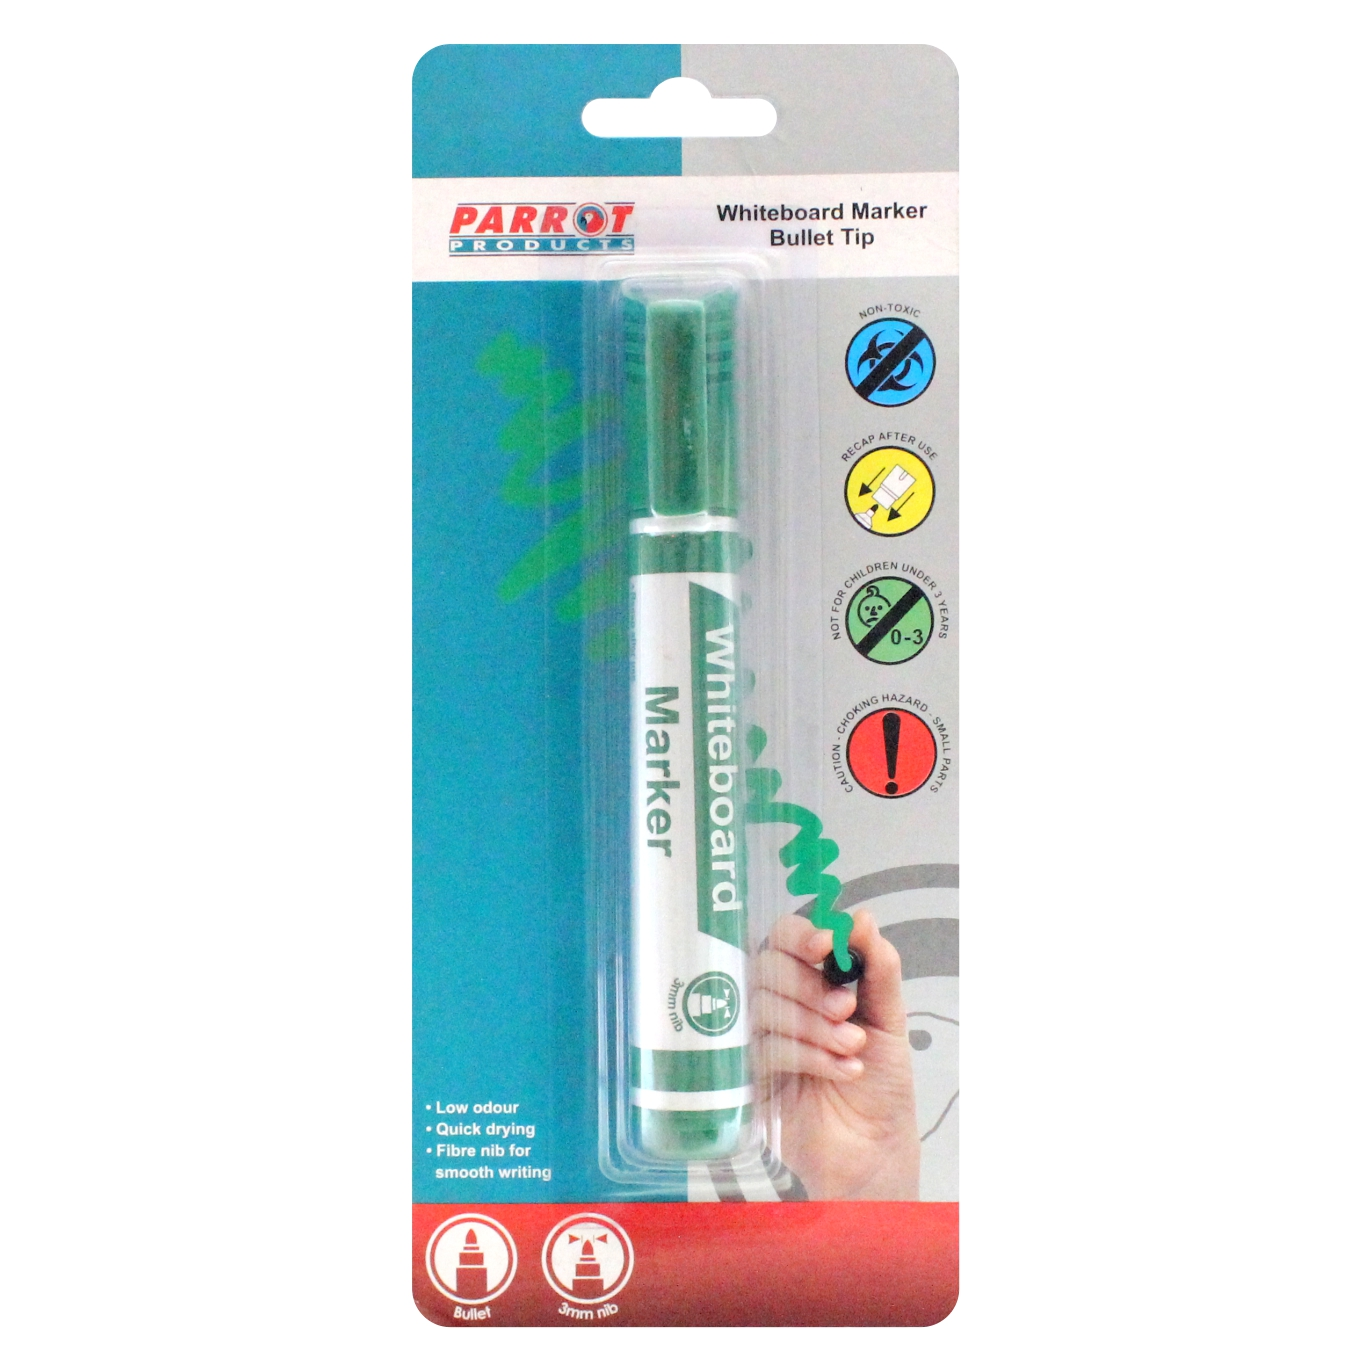 Whiteboard Marker (Bullet Tip, Carded, Green